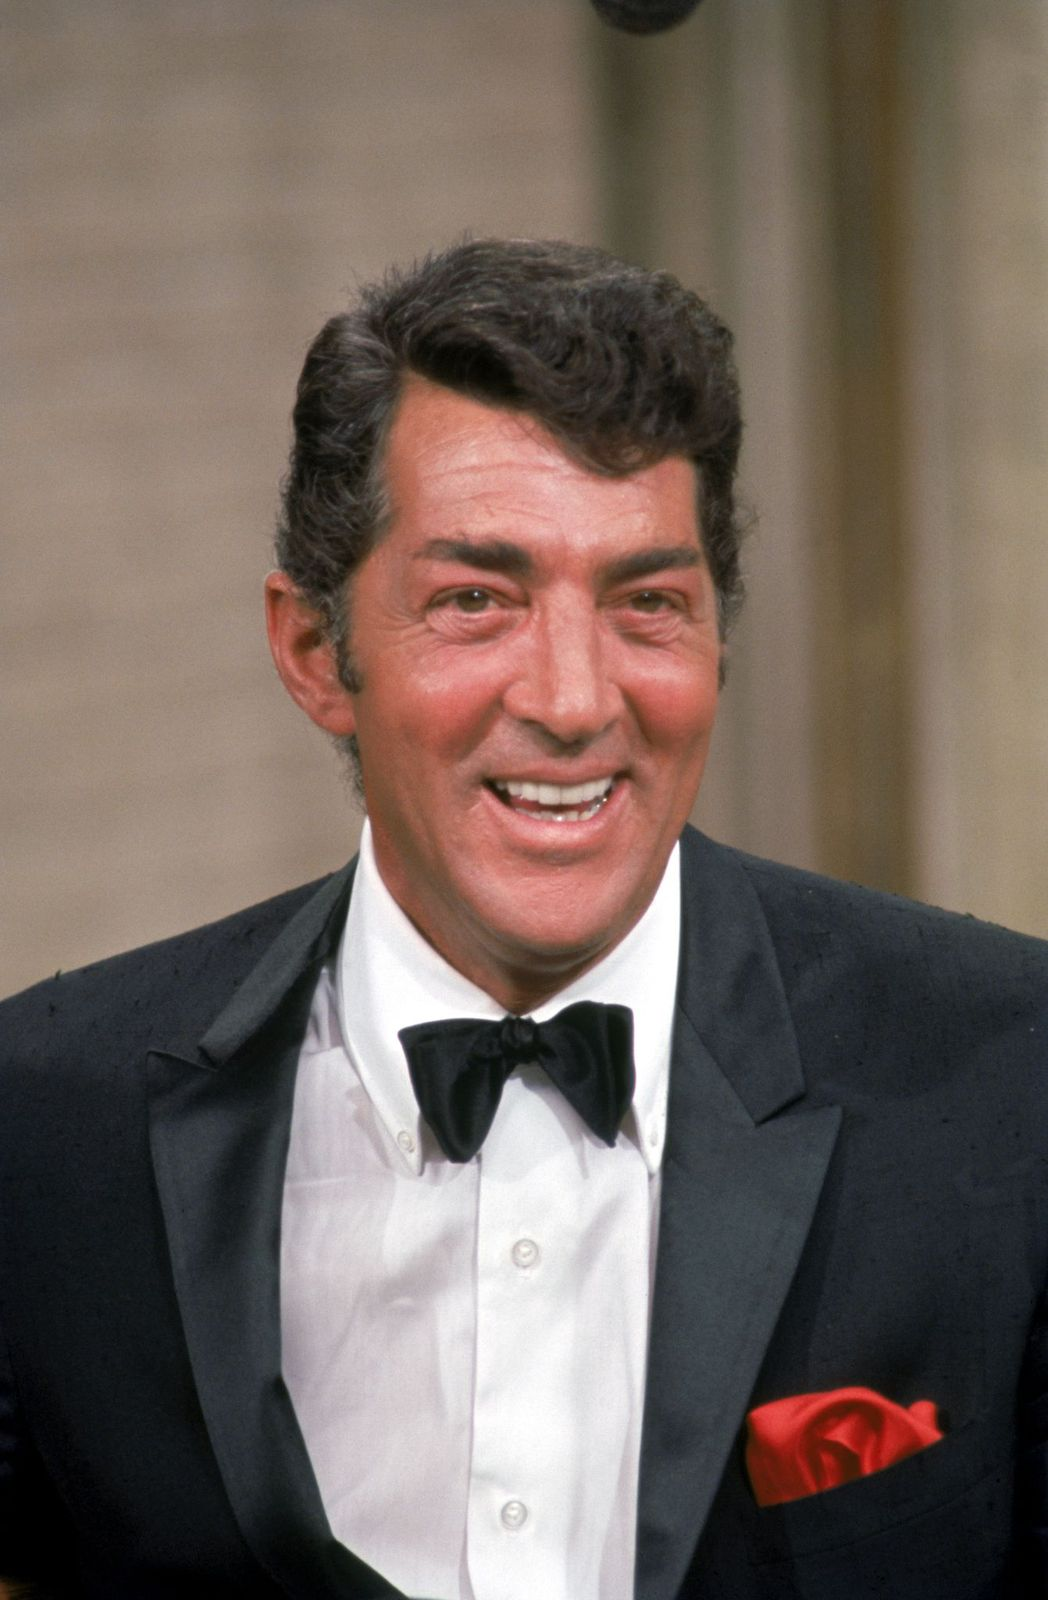 """Dean Martin on the set during filming of """"The Dean Martin show"""" in 1967 